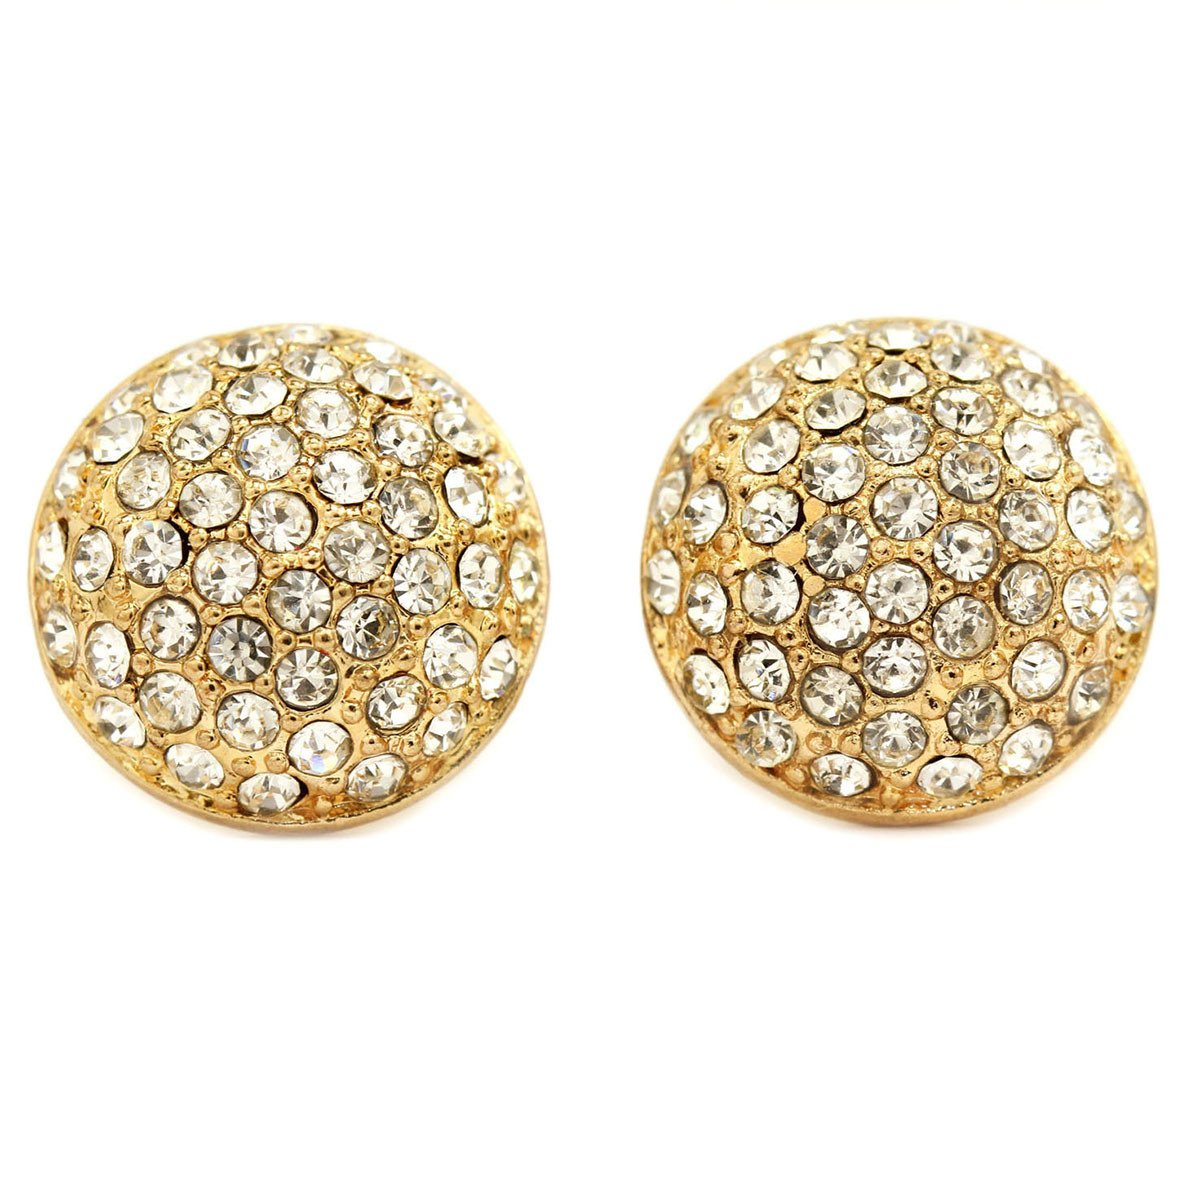 Gold Plated Pave Crystal Round Clip On Earrings   gemgem jewelry.myshopify.com